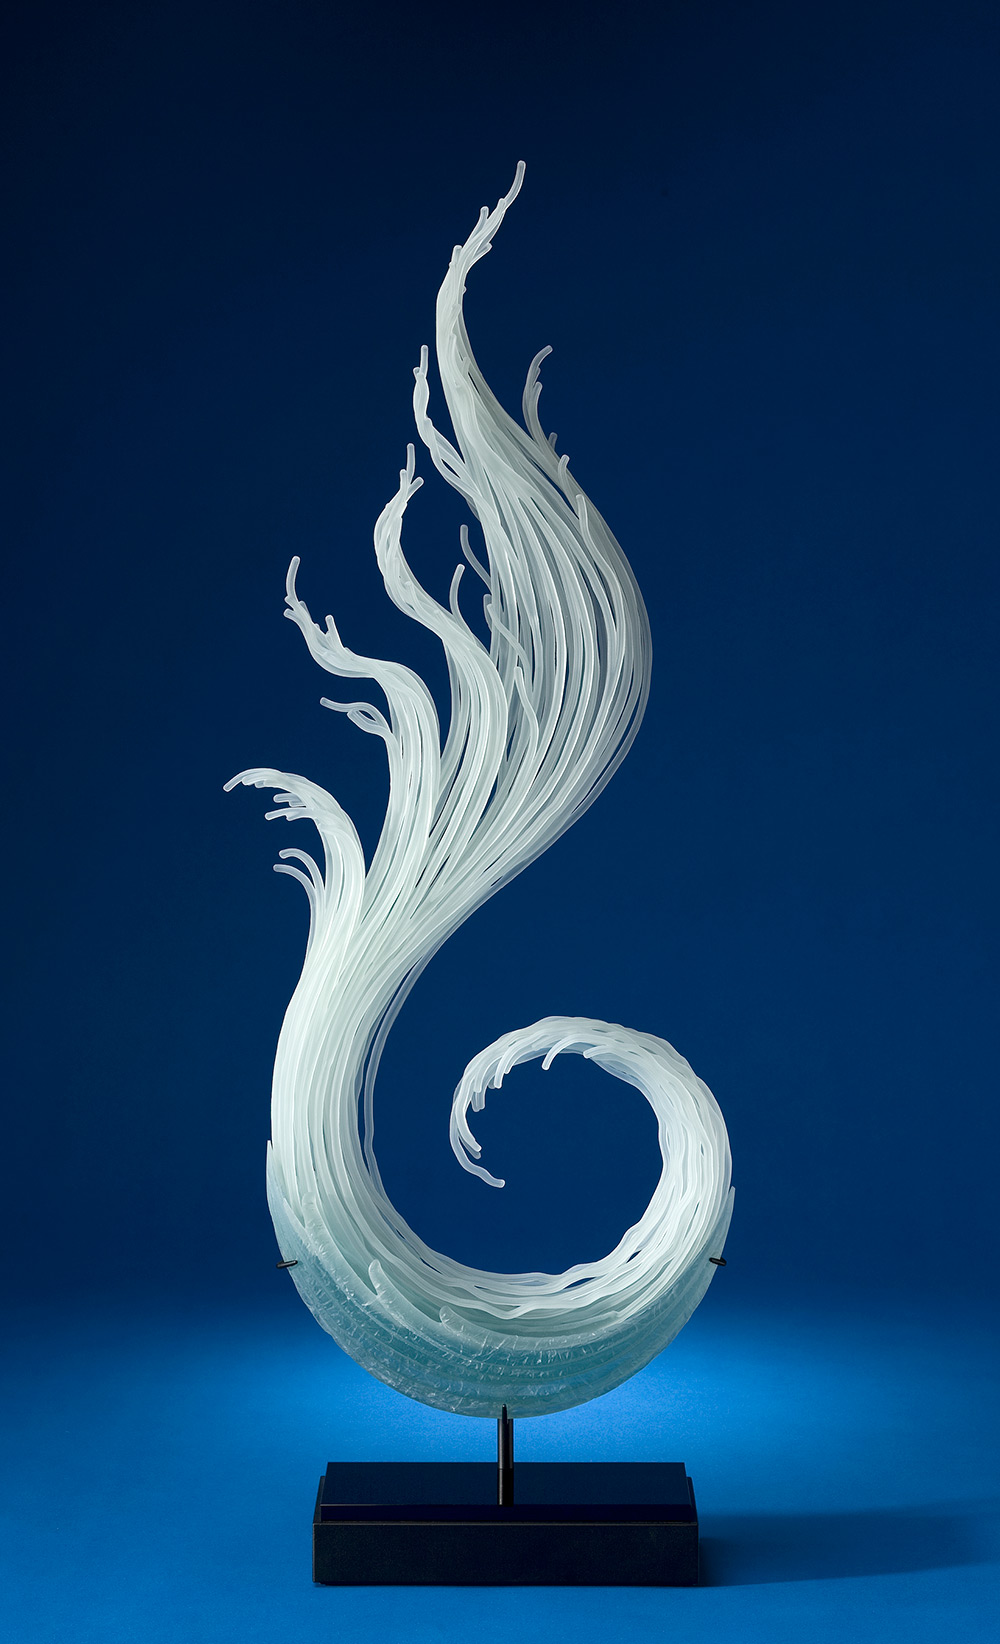 Layered Glass Sculptures Mimic the Everyday Drama of the Natural ...